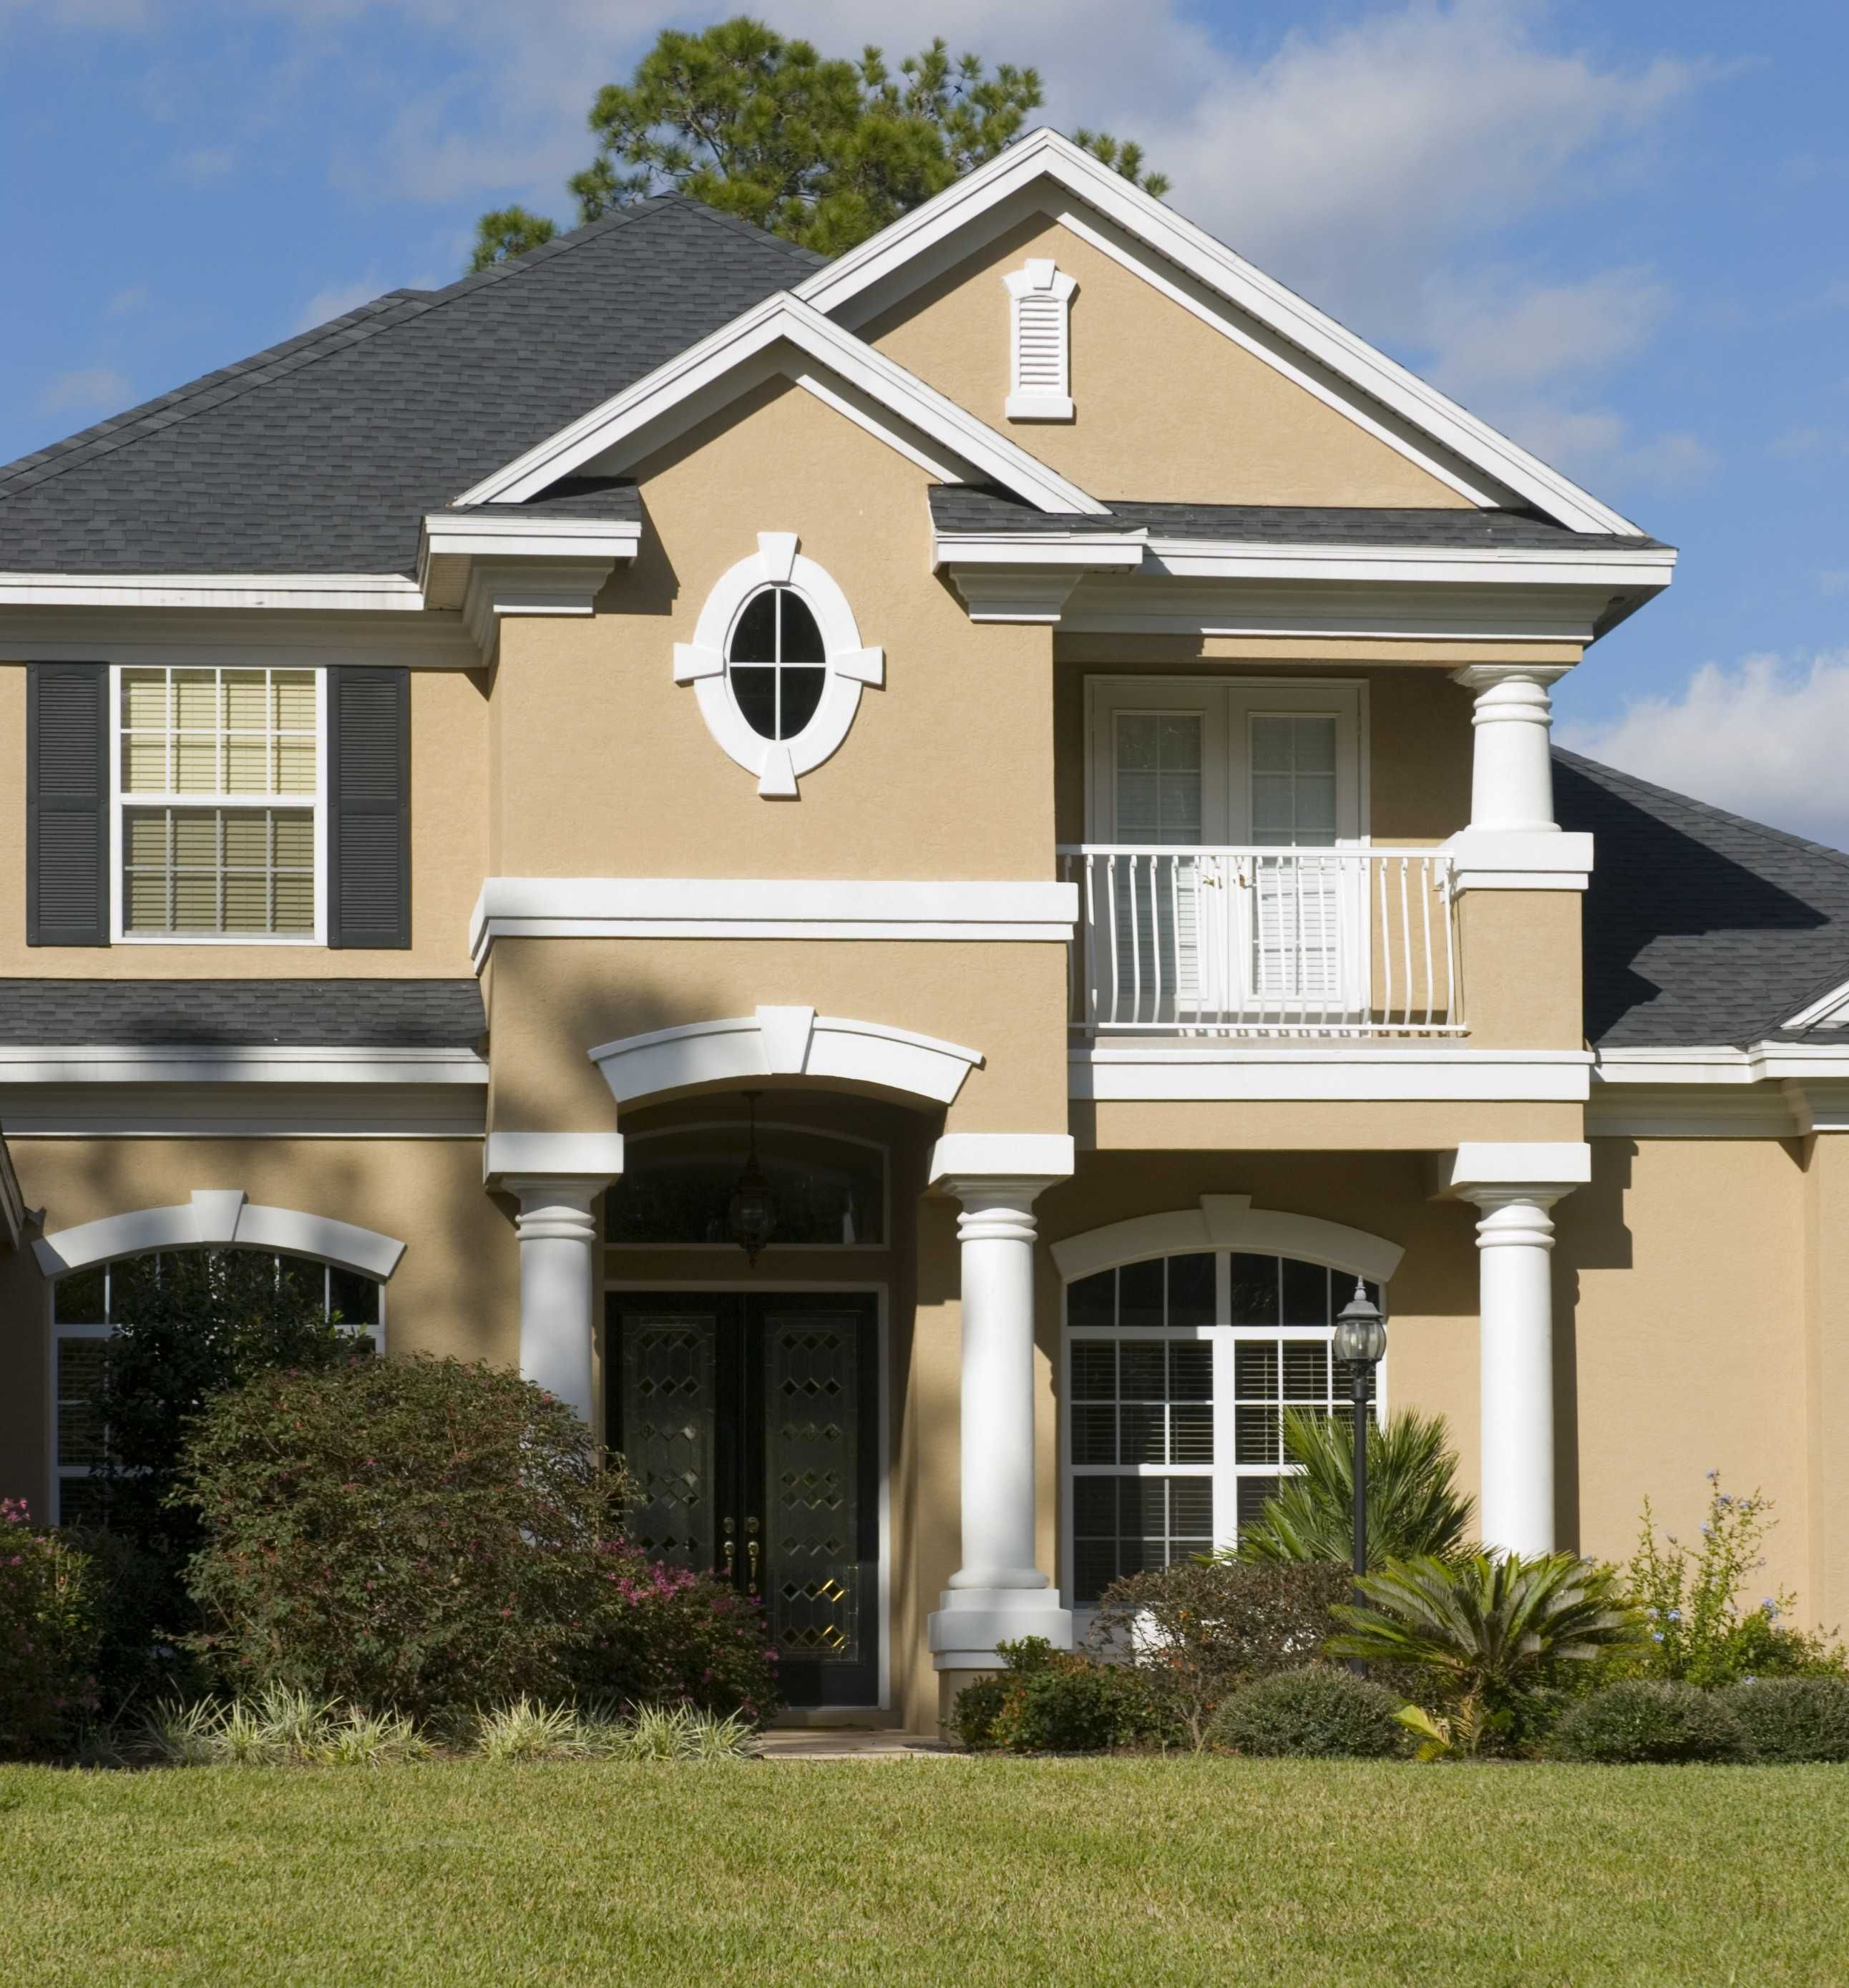 Home Exterior Design Tool: 25+ Inspirational Exterior House Paint Color Combinations